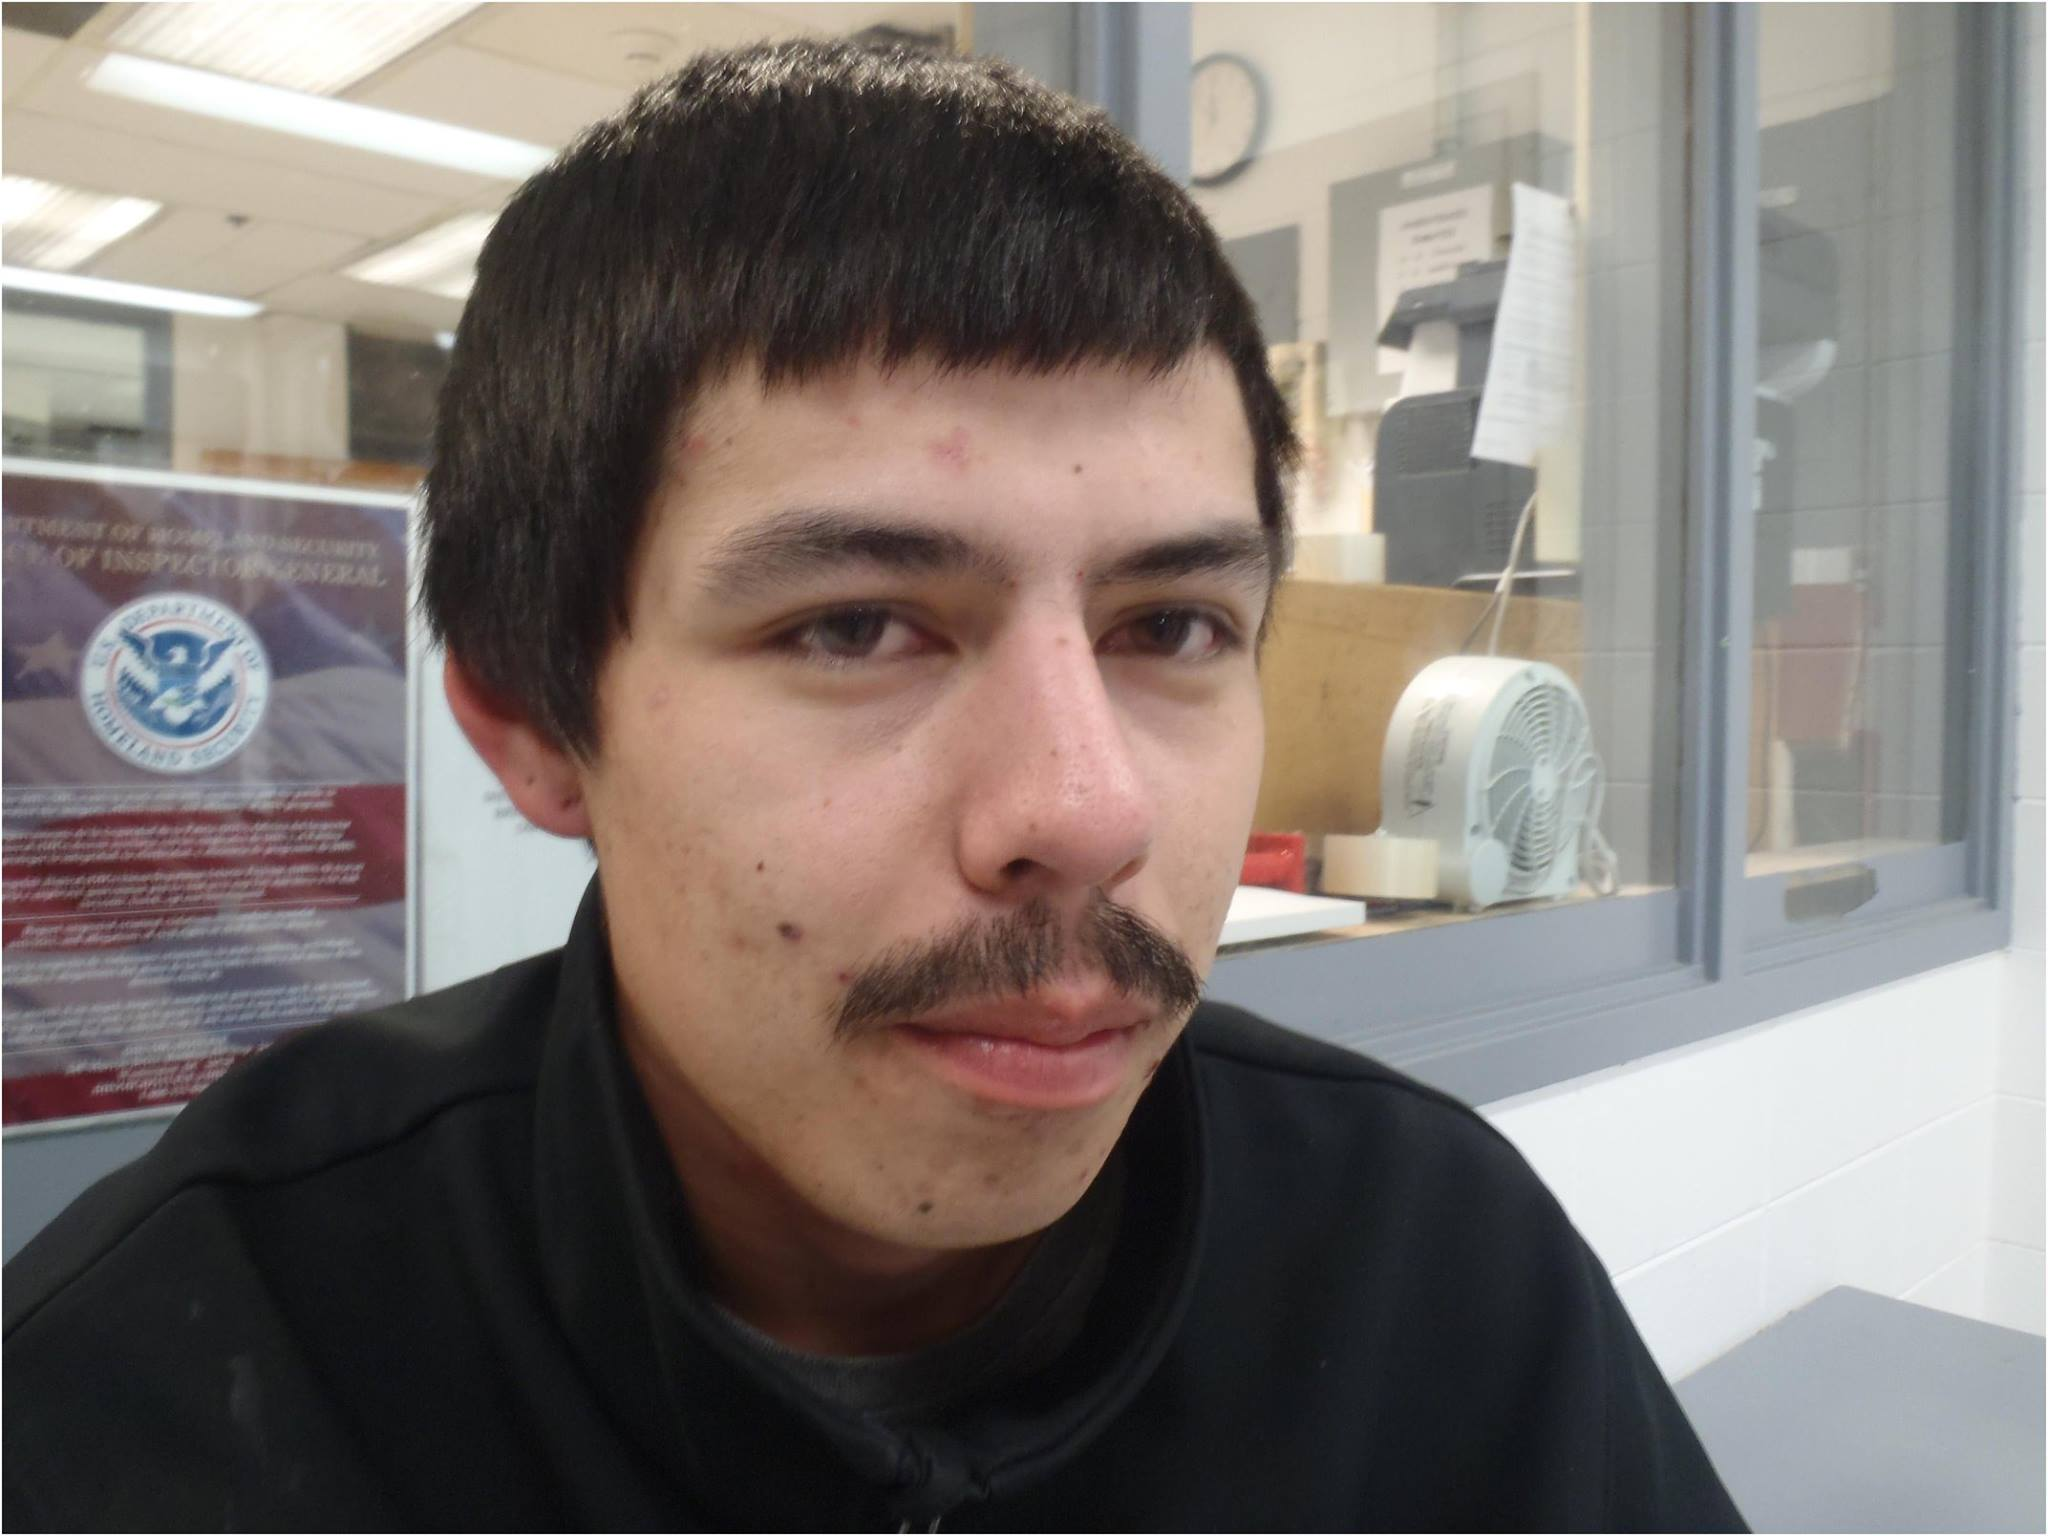 """William """"Billy"""" Moy Jr. is wanted in connection with stolen bankcards that have been used at about 10 Juneau businesses. Moy is also wanted on several warrants of his arrest. (Photo by Juneau Police Department)"""